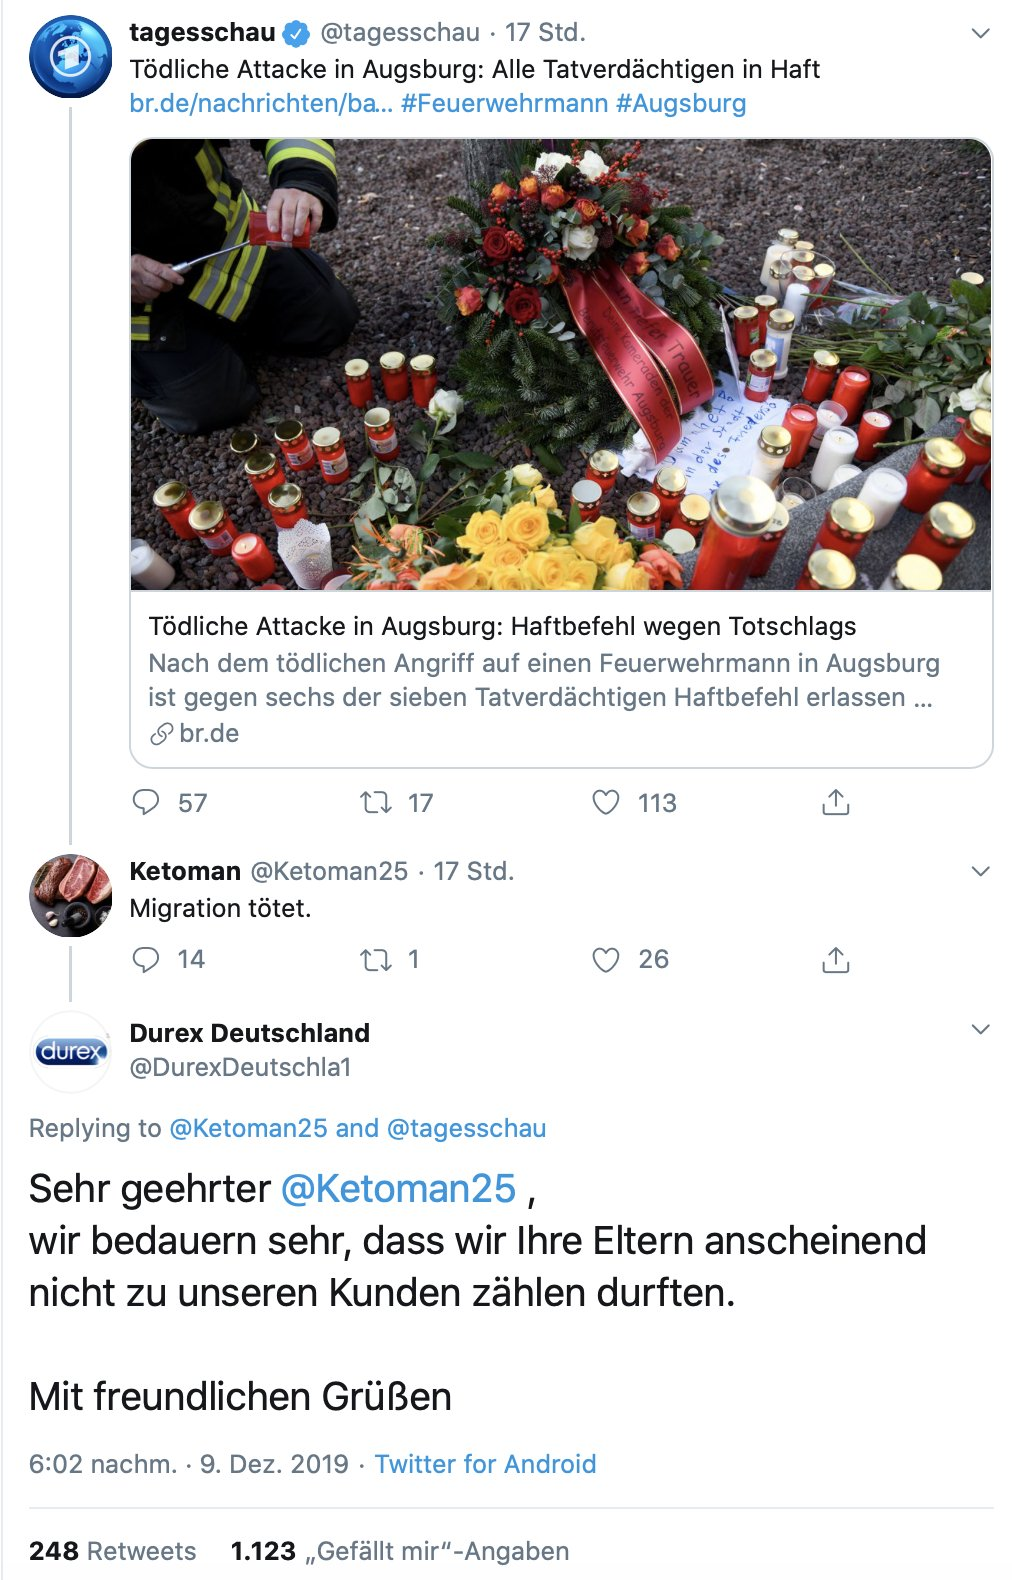 social media konter migration toetet - Migration tötet - der Social Media Konter des Jahres